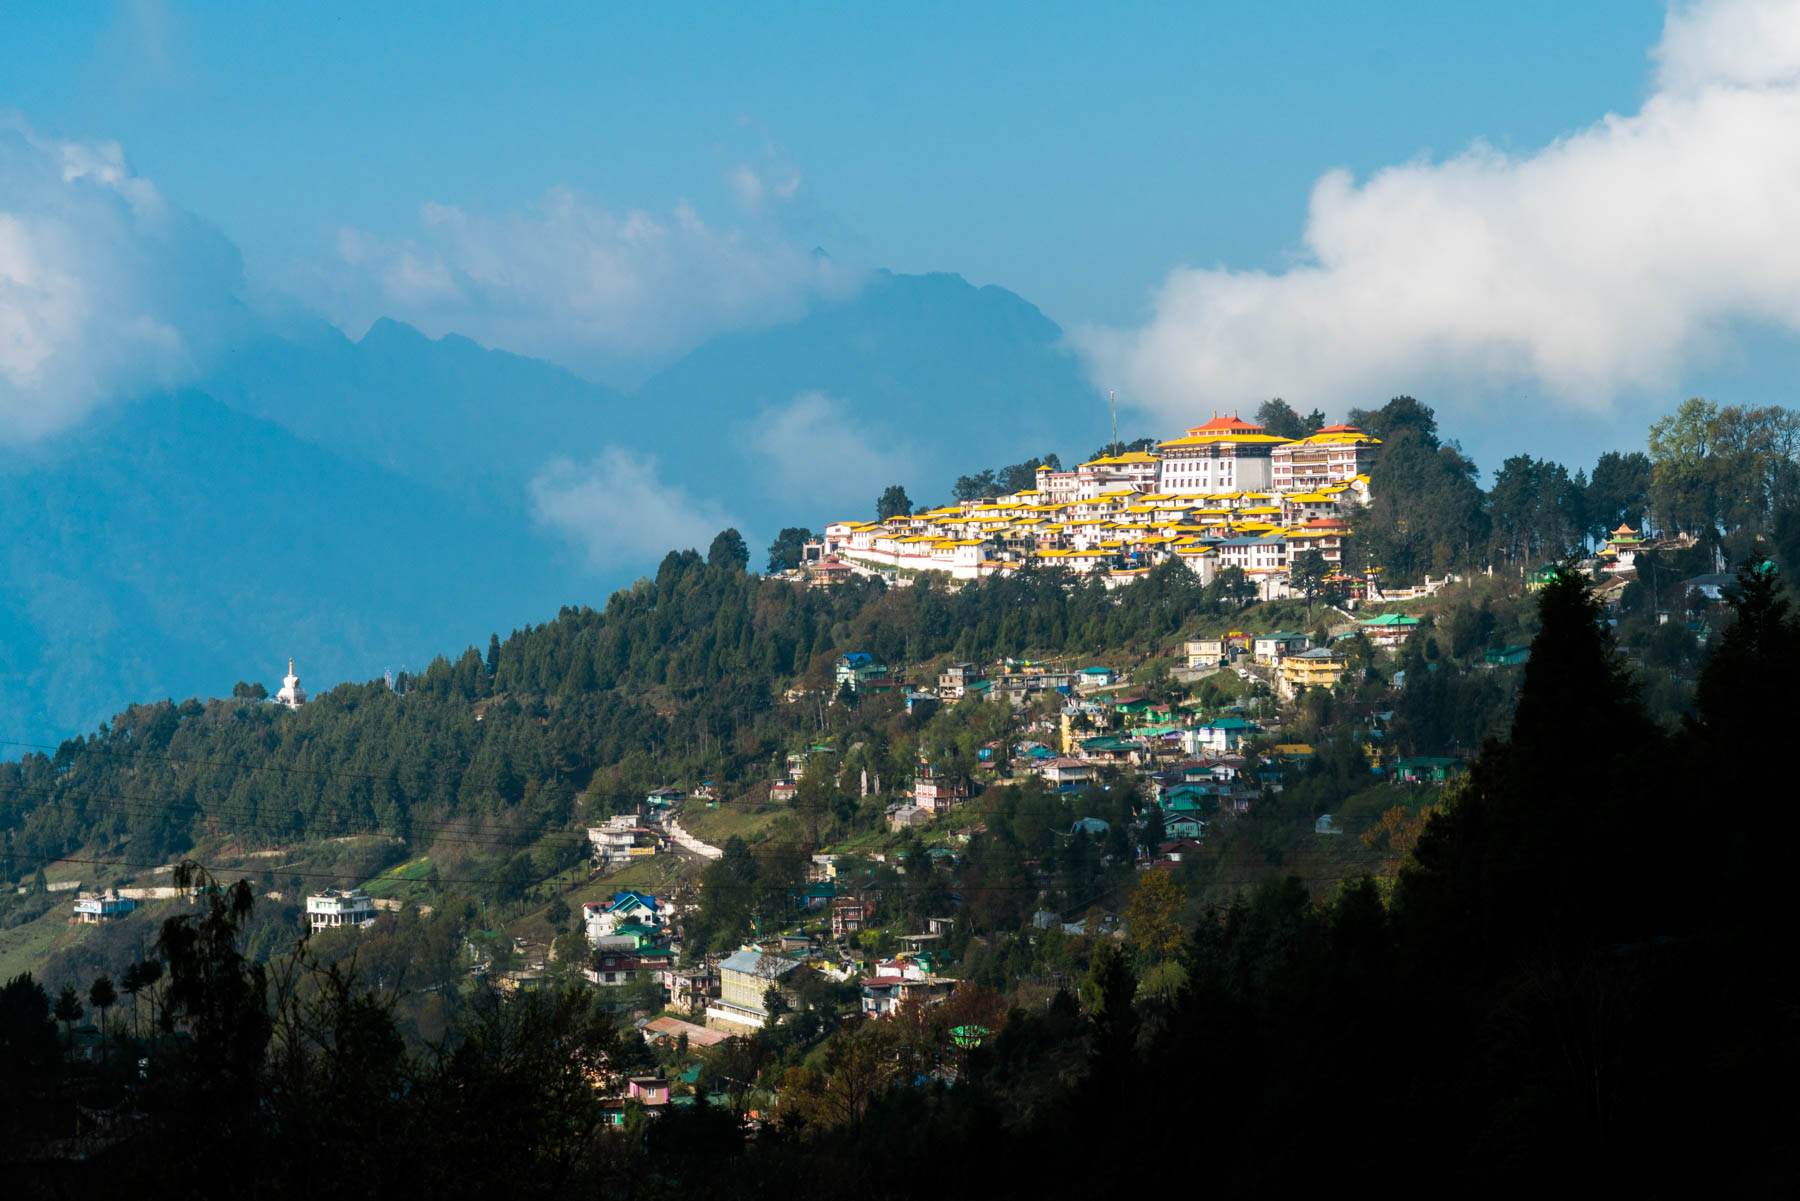 Backpacking Arunachal Pradesh travel guide - Tawang Monastery on a sunny day - Lost With Purpose